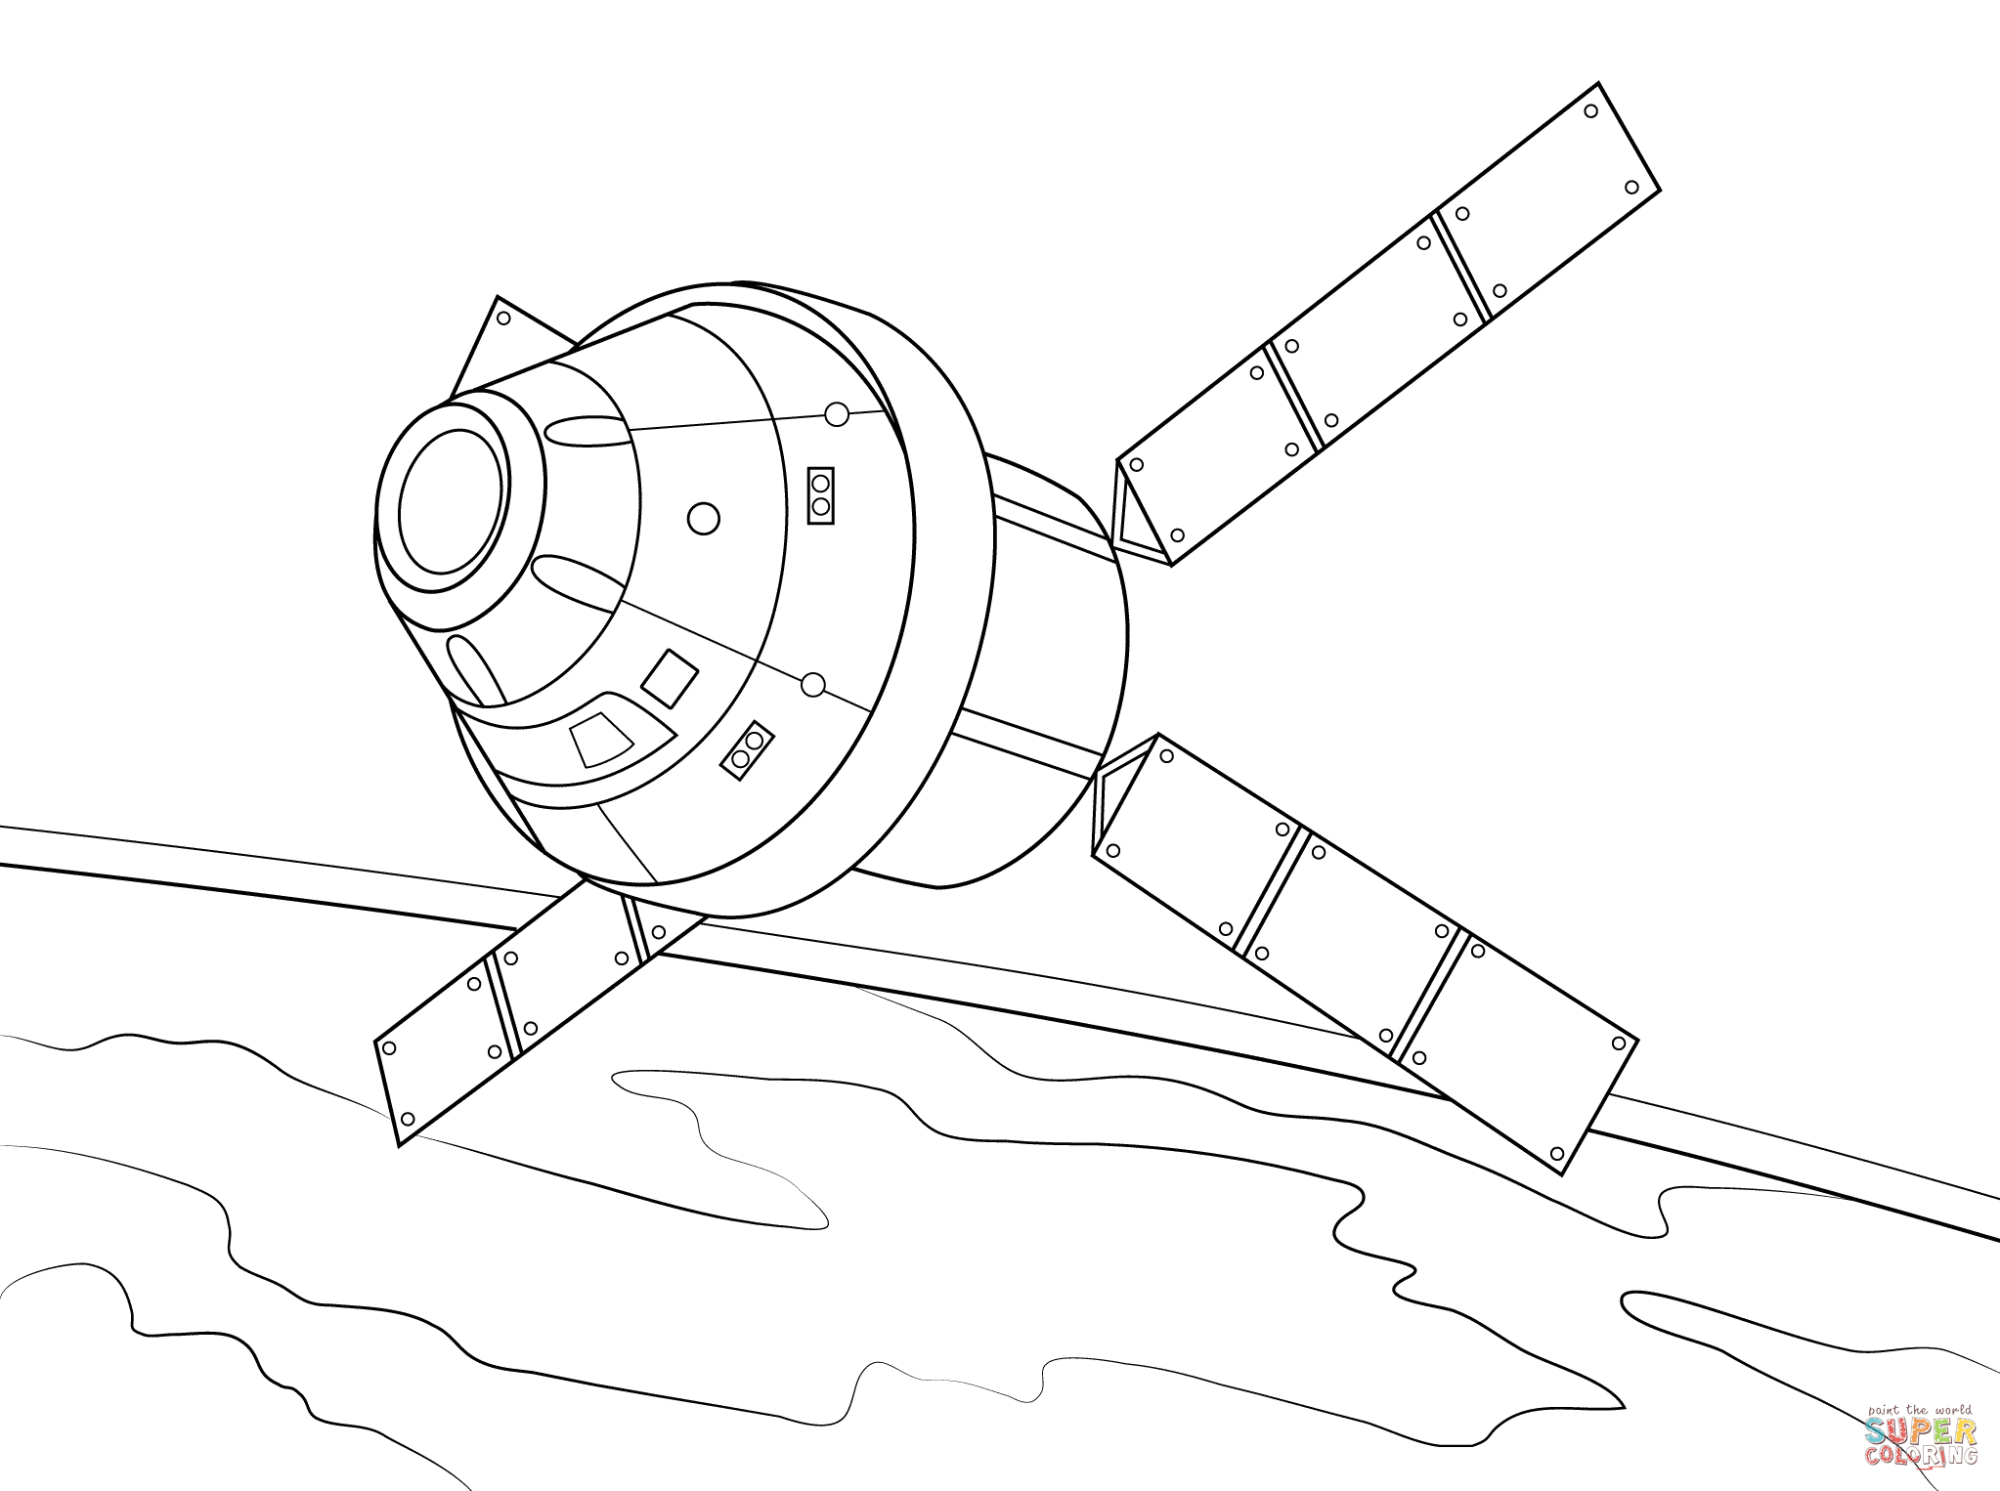 hight resolution of orion spacecraft with atv based service module coloring page